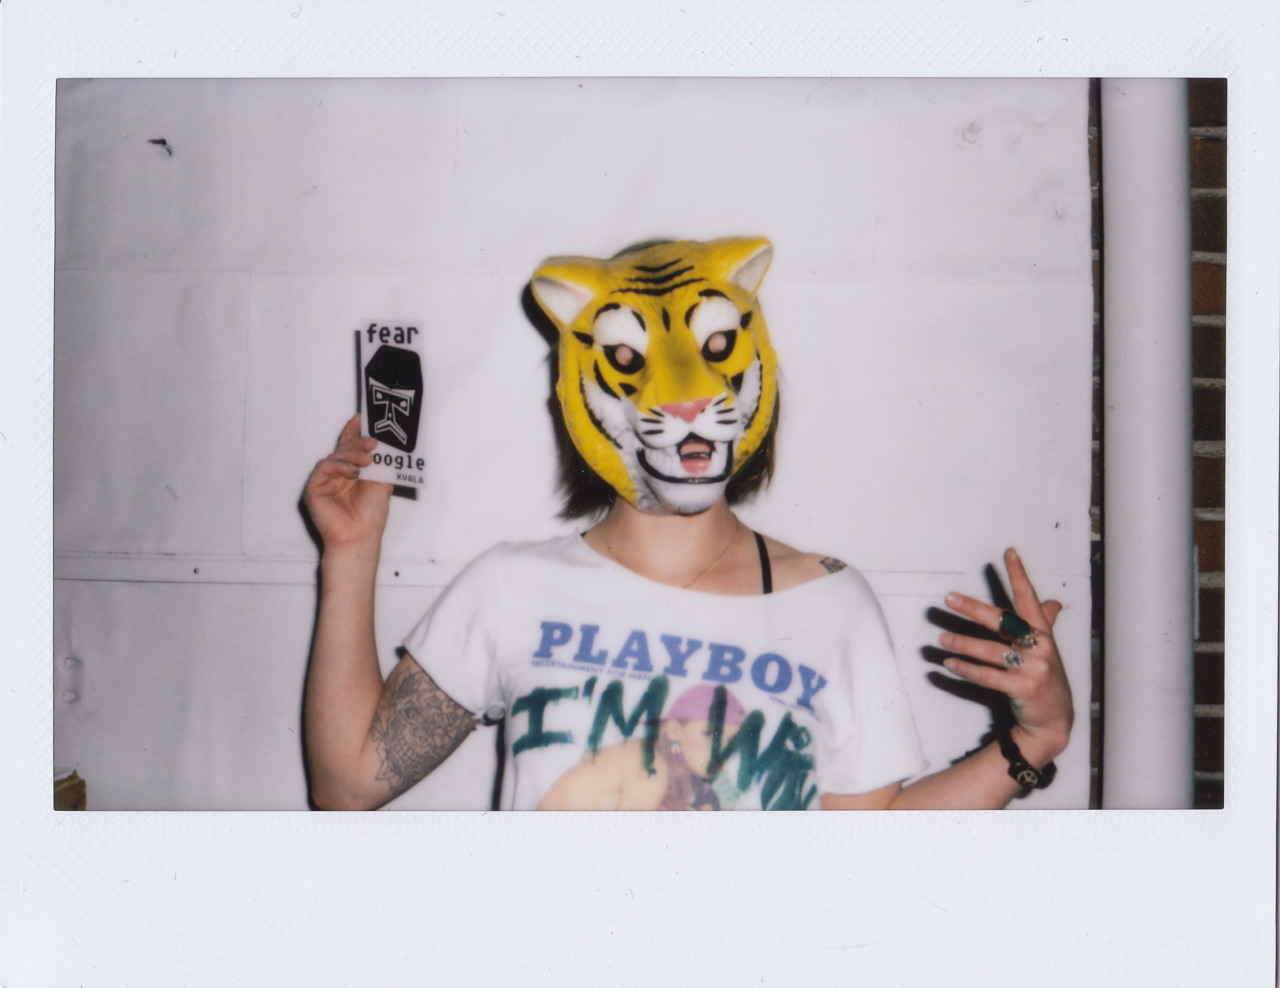 Fear Google The Tigergirl by Reserve Result and XVALA, downtown Los Angeles, March 2012.